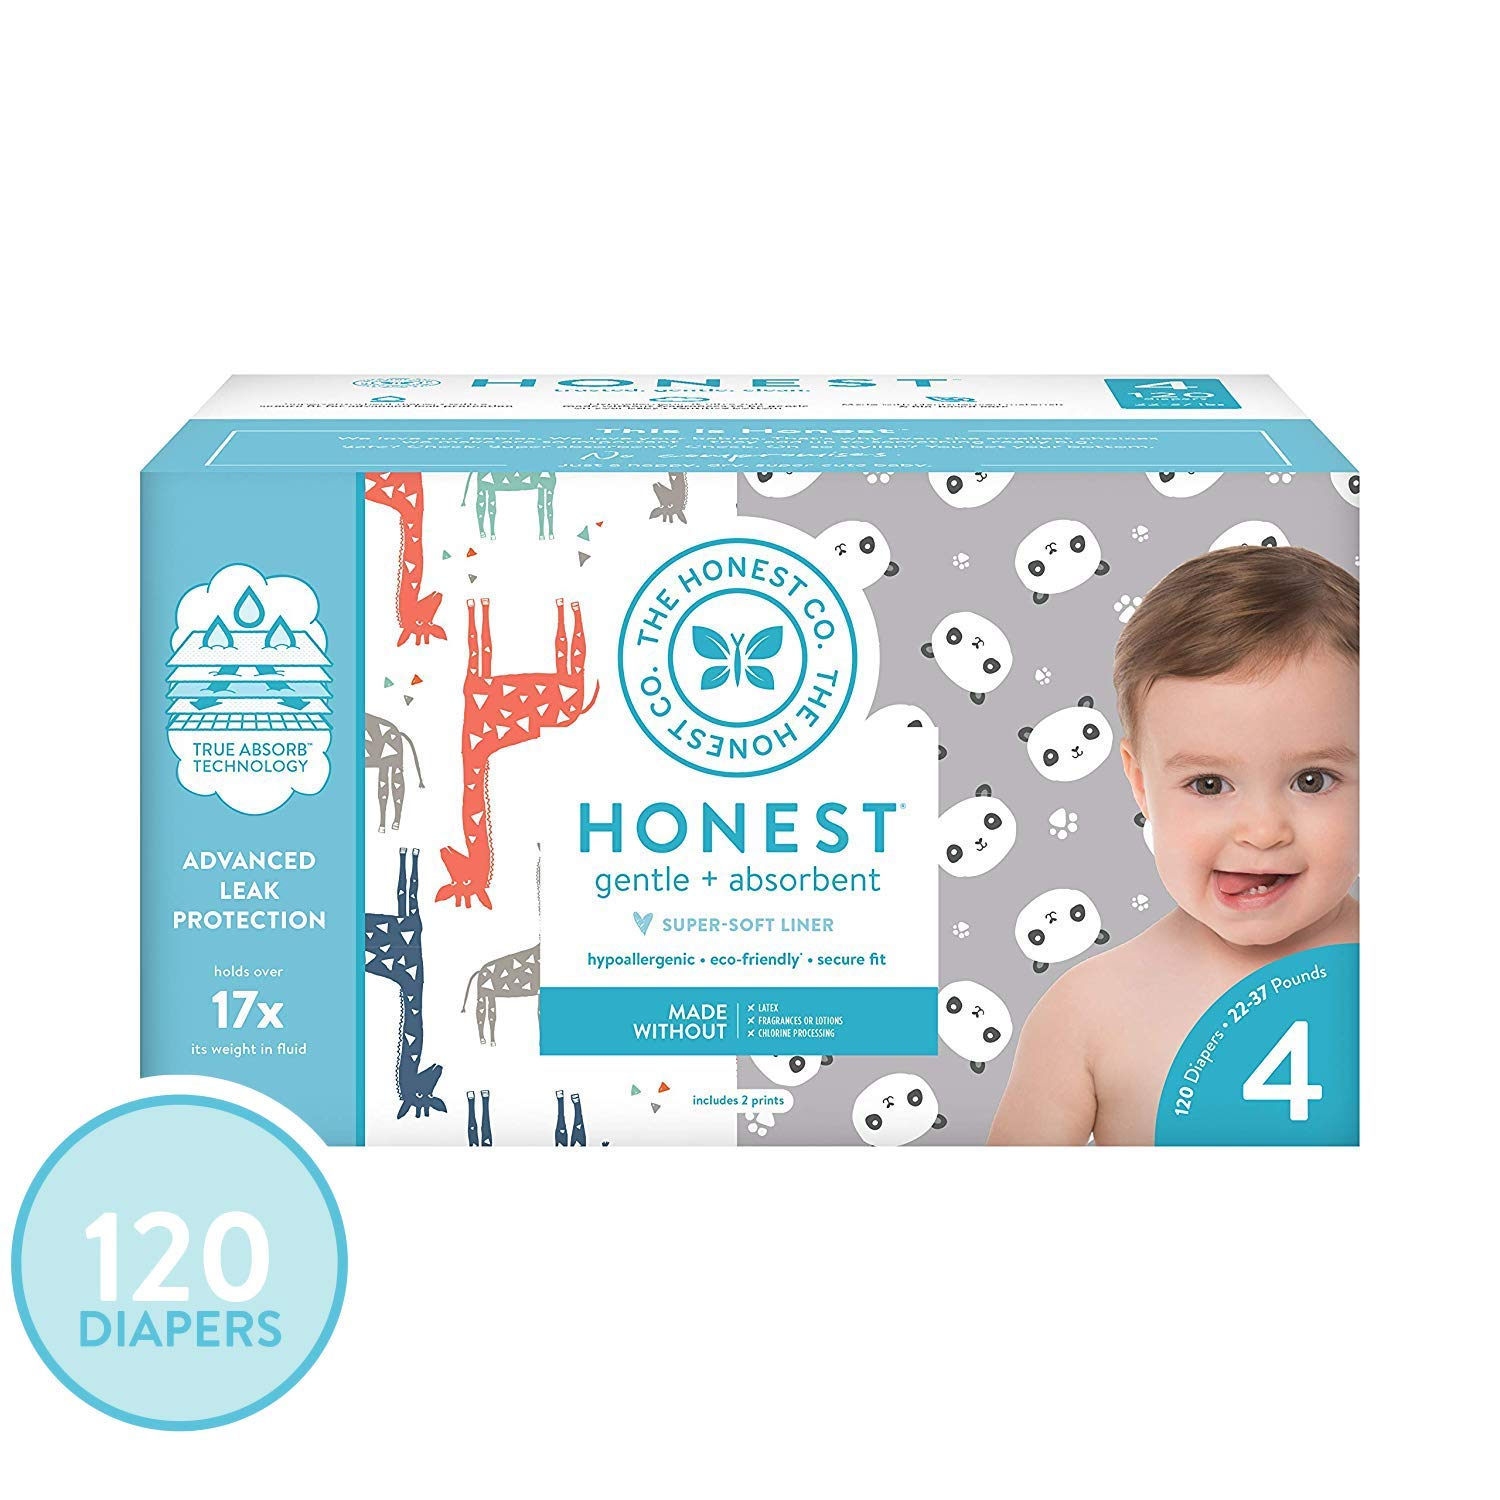 The Honest Company Super Club Box Diapers - Size 4 - Pandas & Safari Print | TrueAbsorb Technology | Plant-Derived Materials | Hypoallergenic | 120 Count by The Honest Company